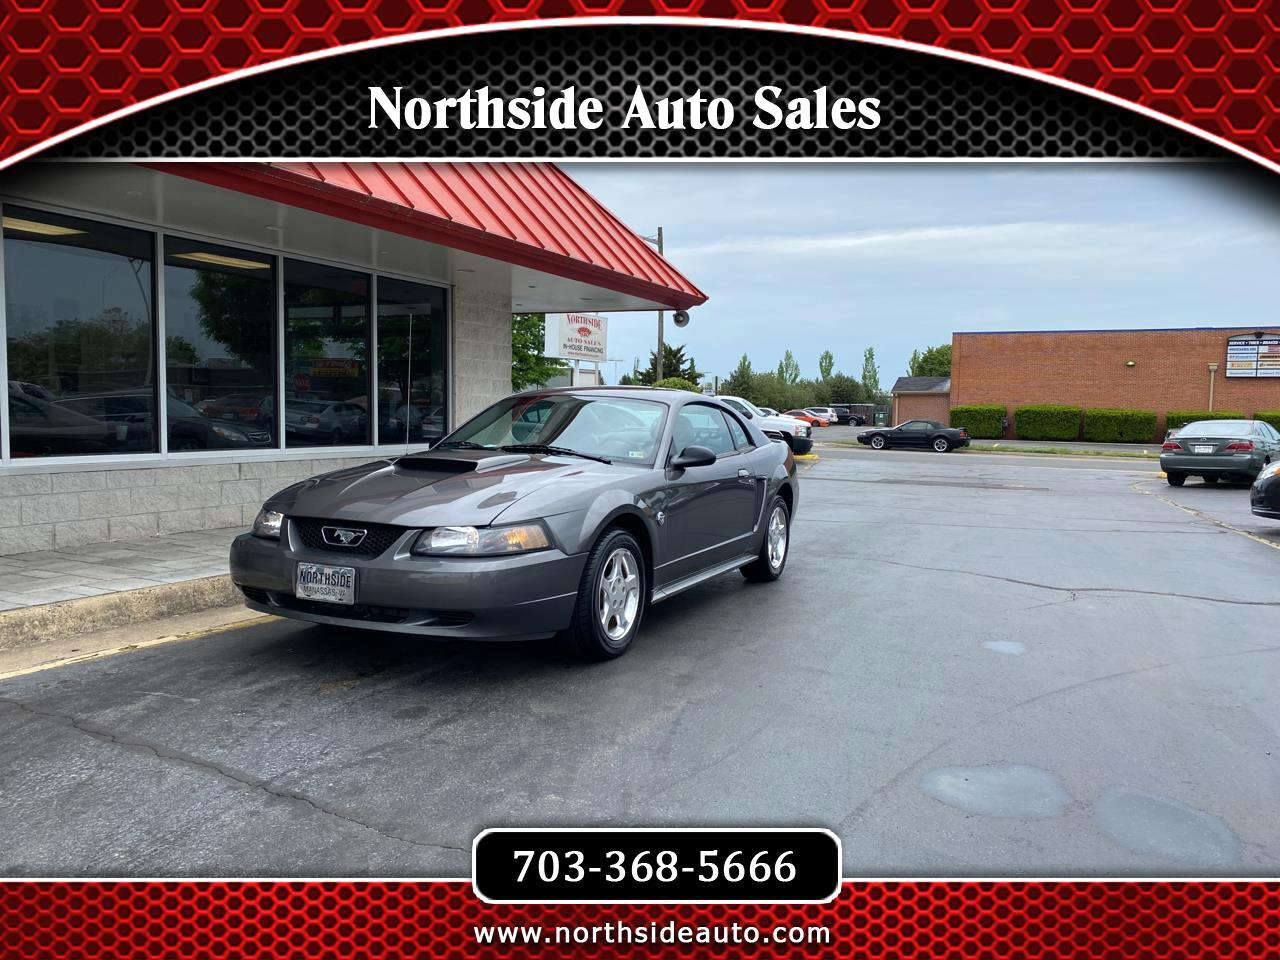 Ford Mustang Premium Coupe 2004